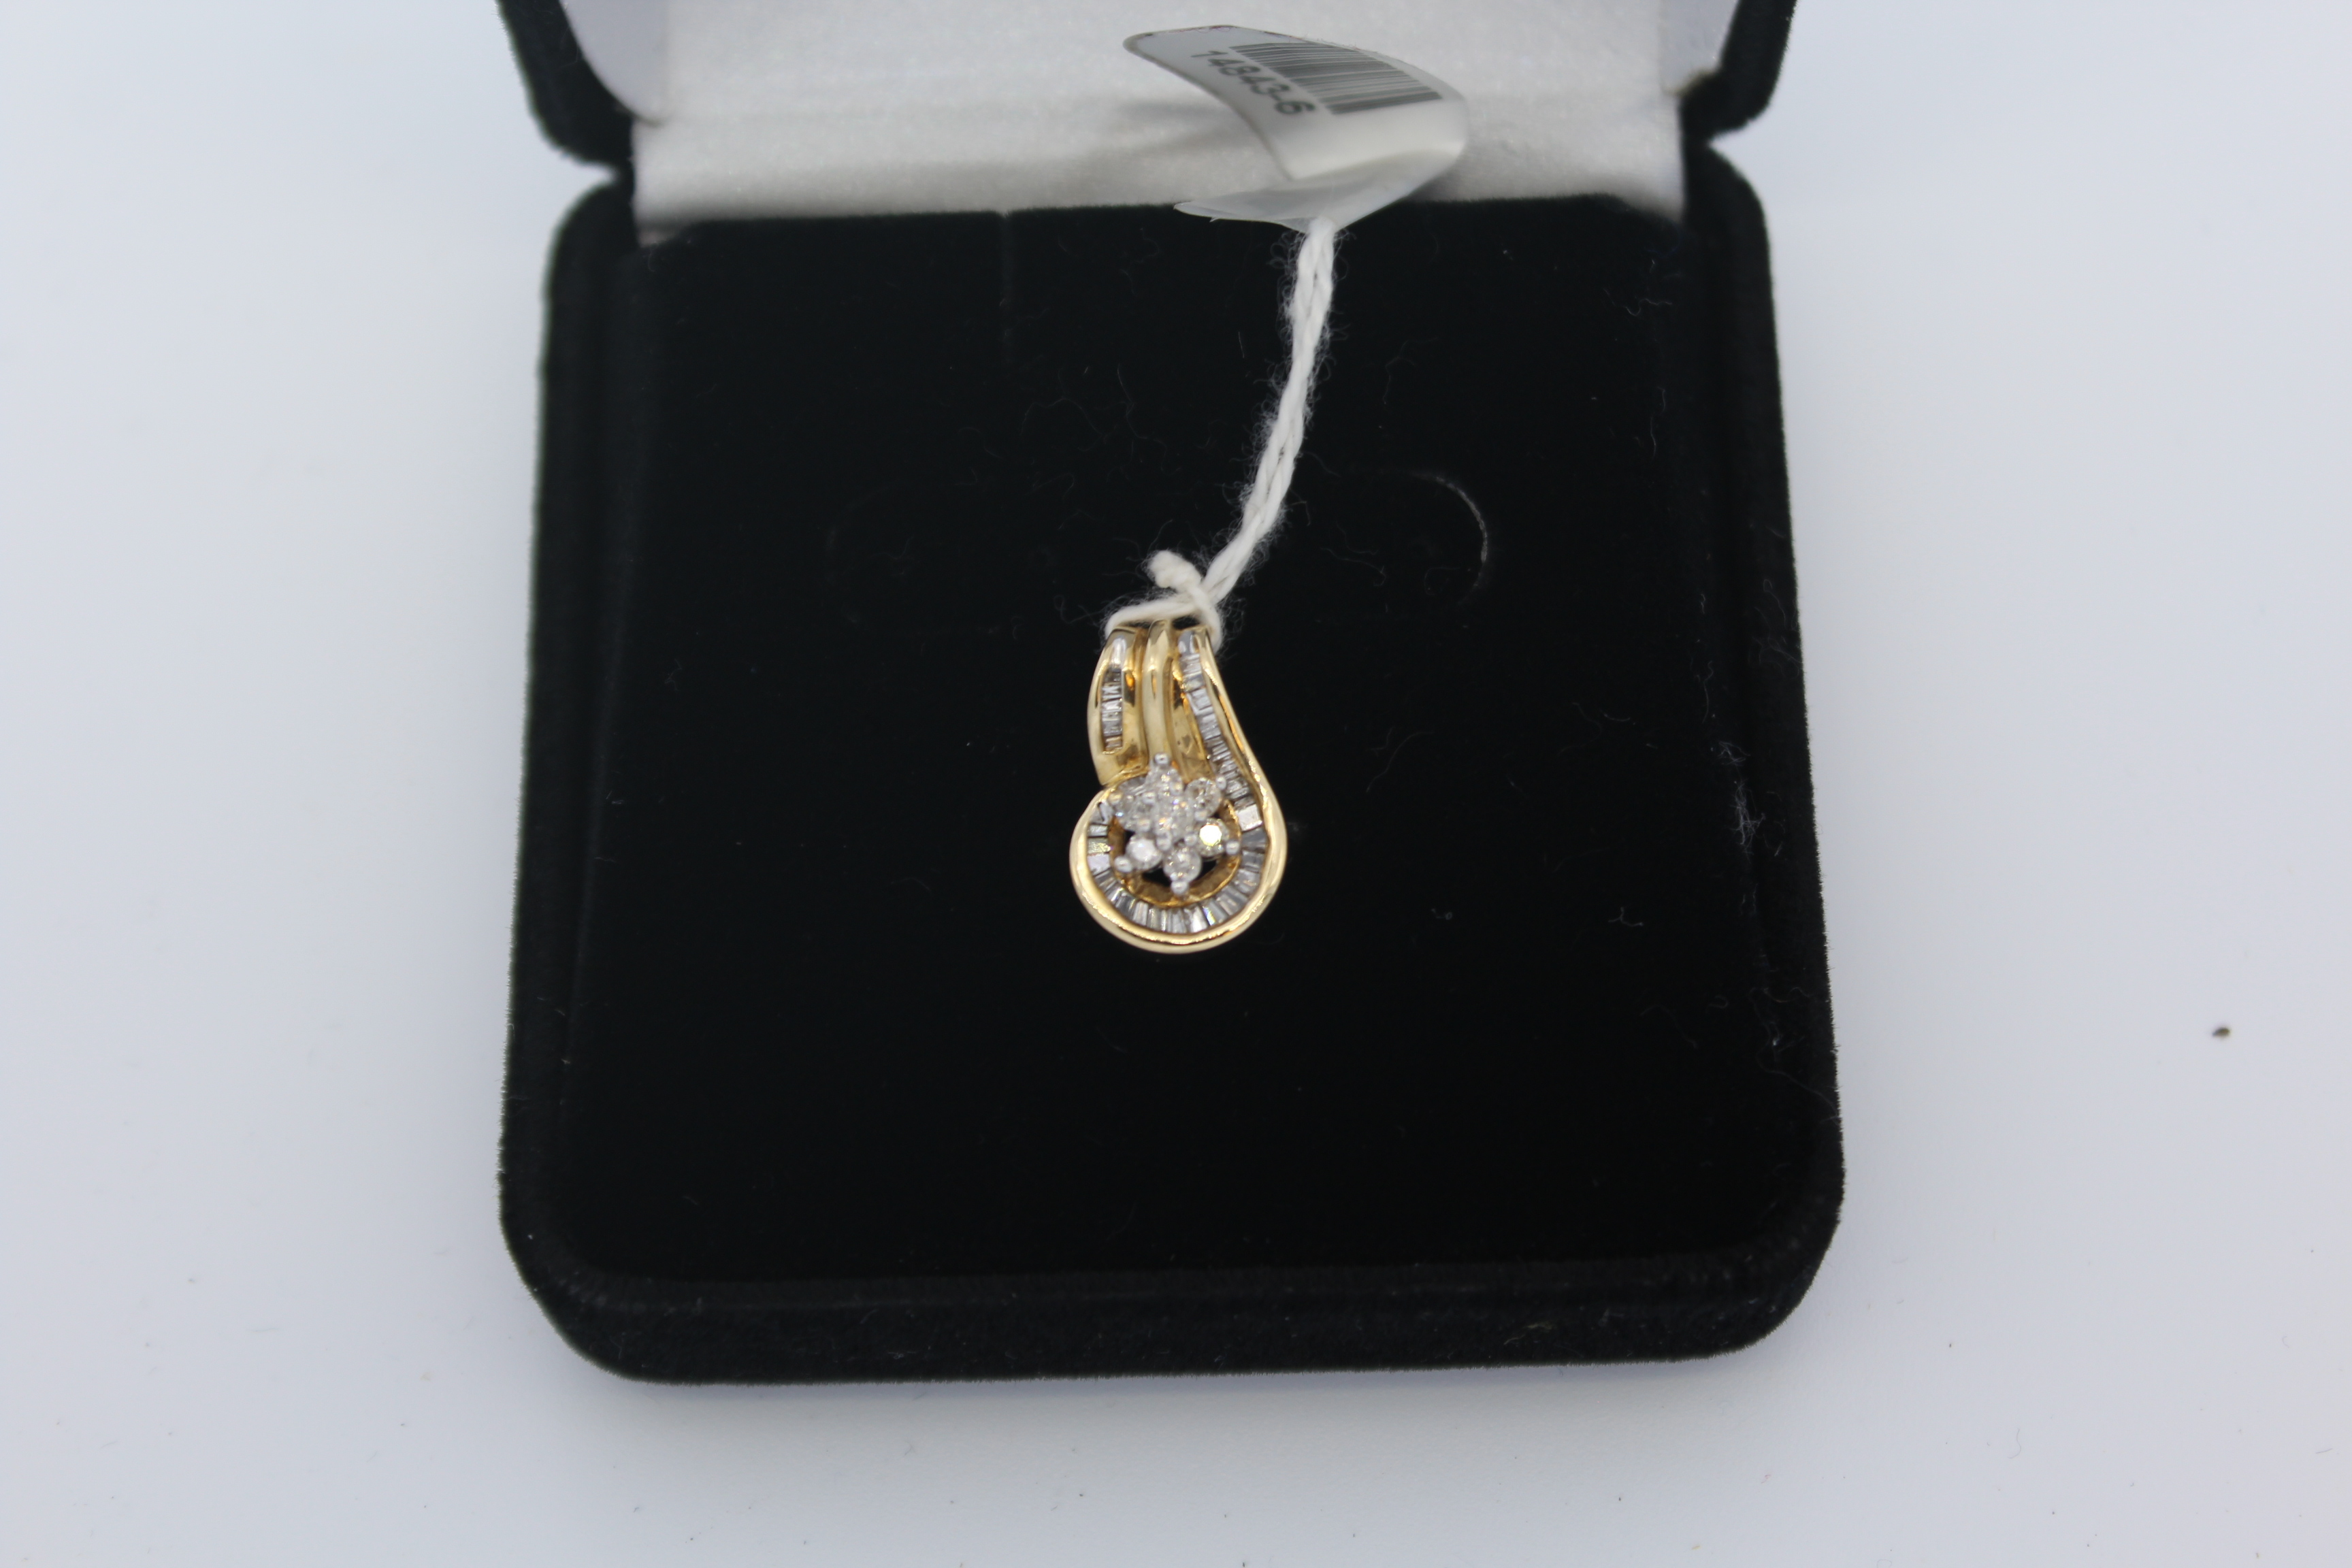 10K Yellow Gold with clear Stones Pendant